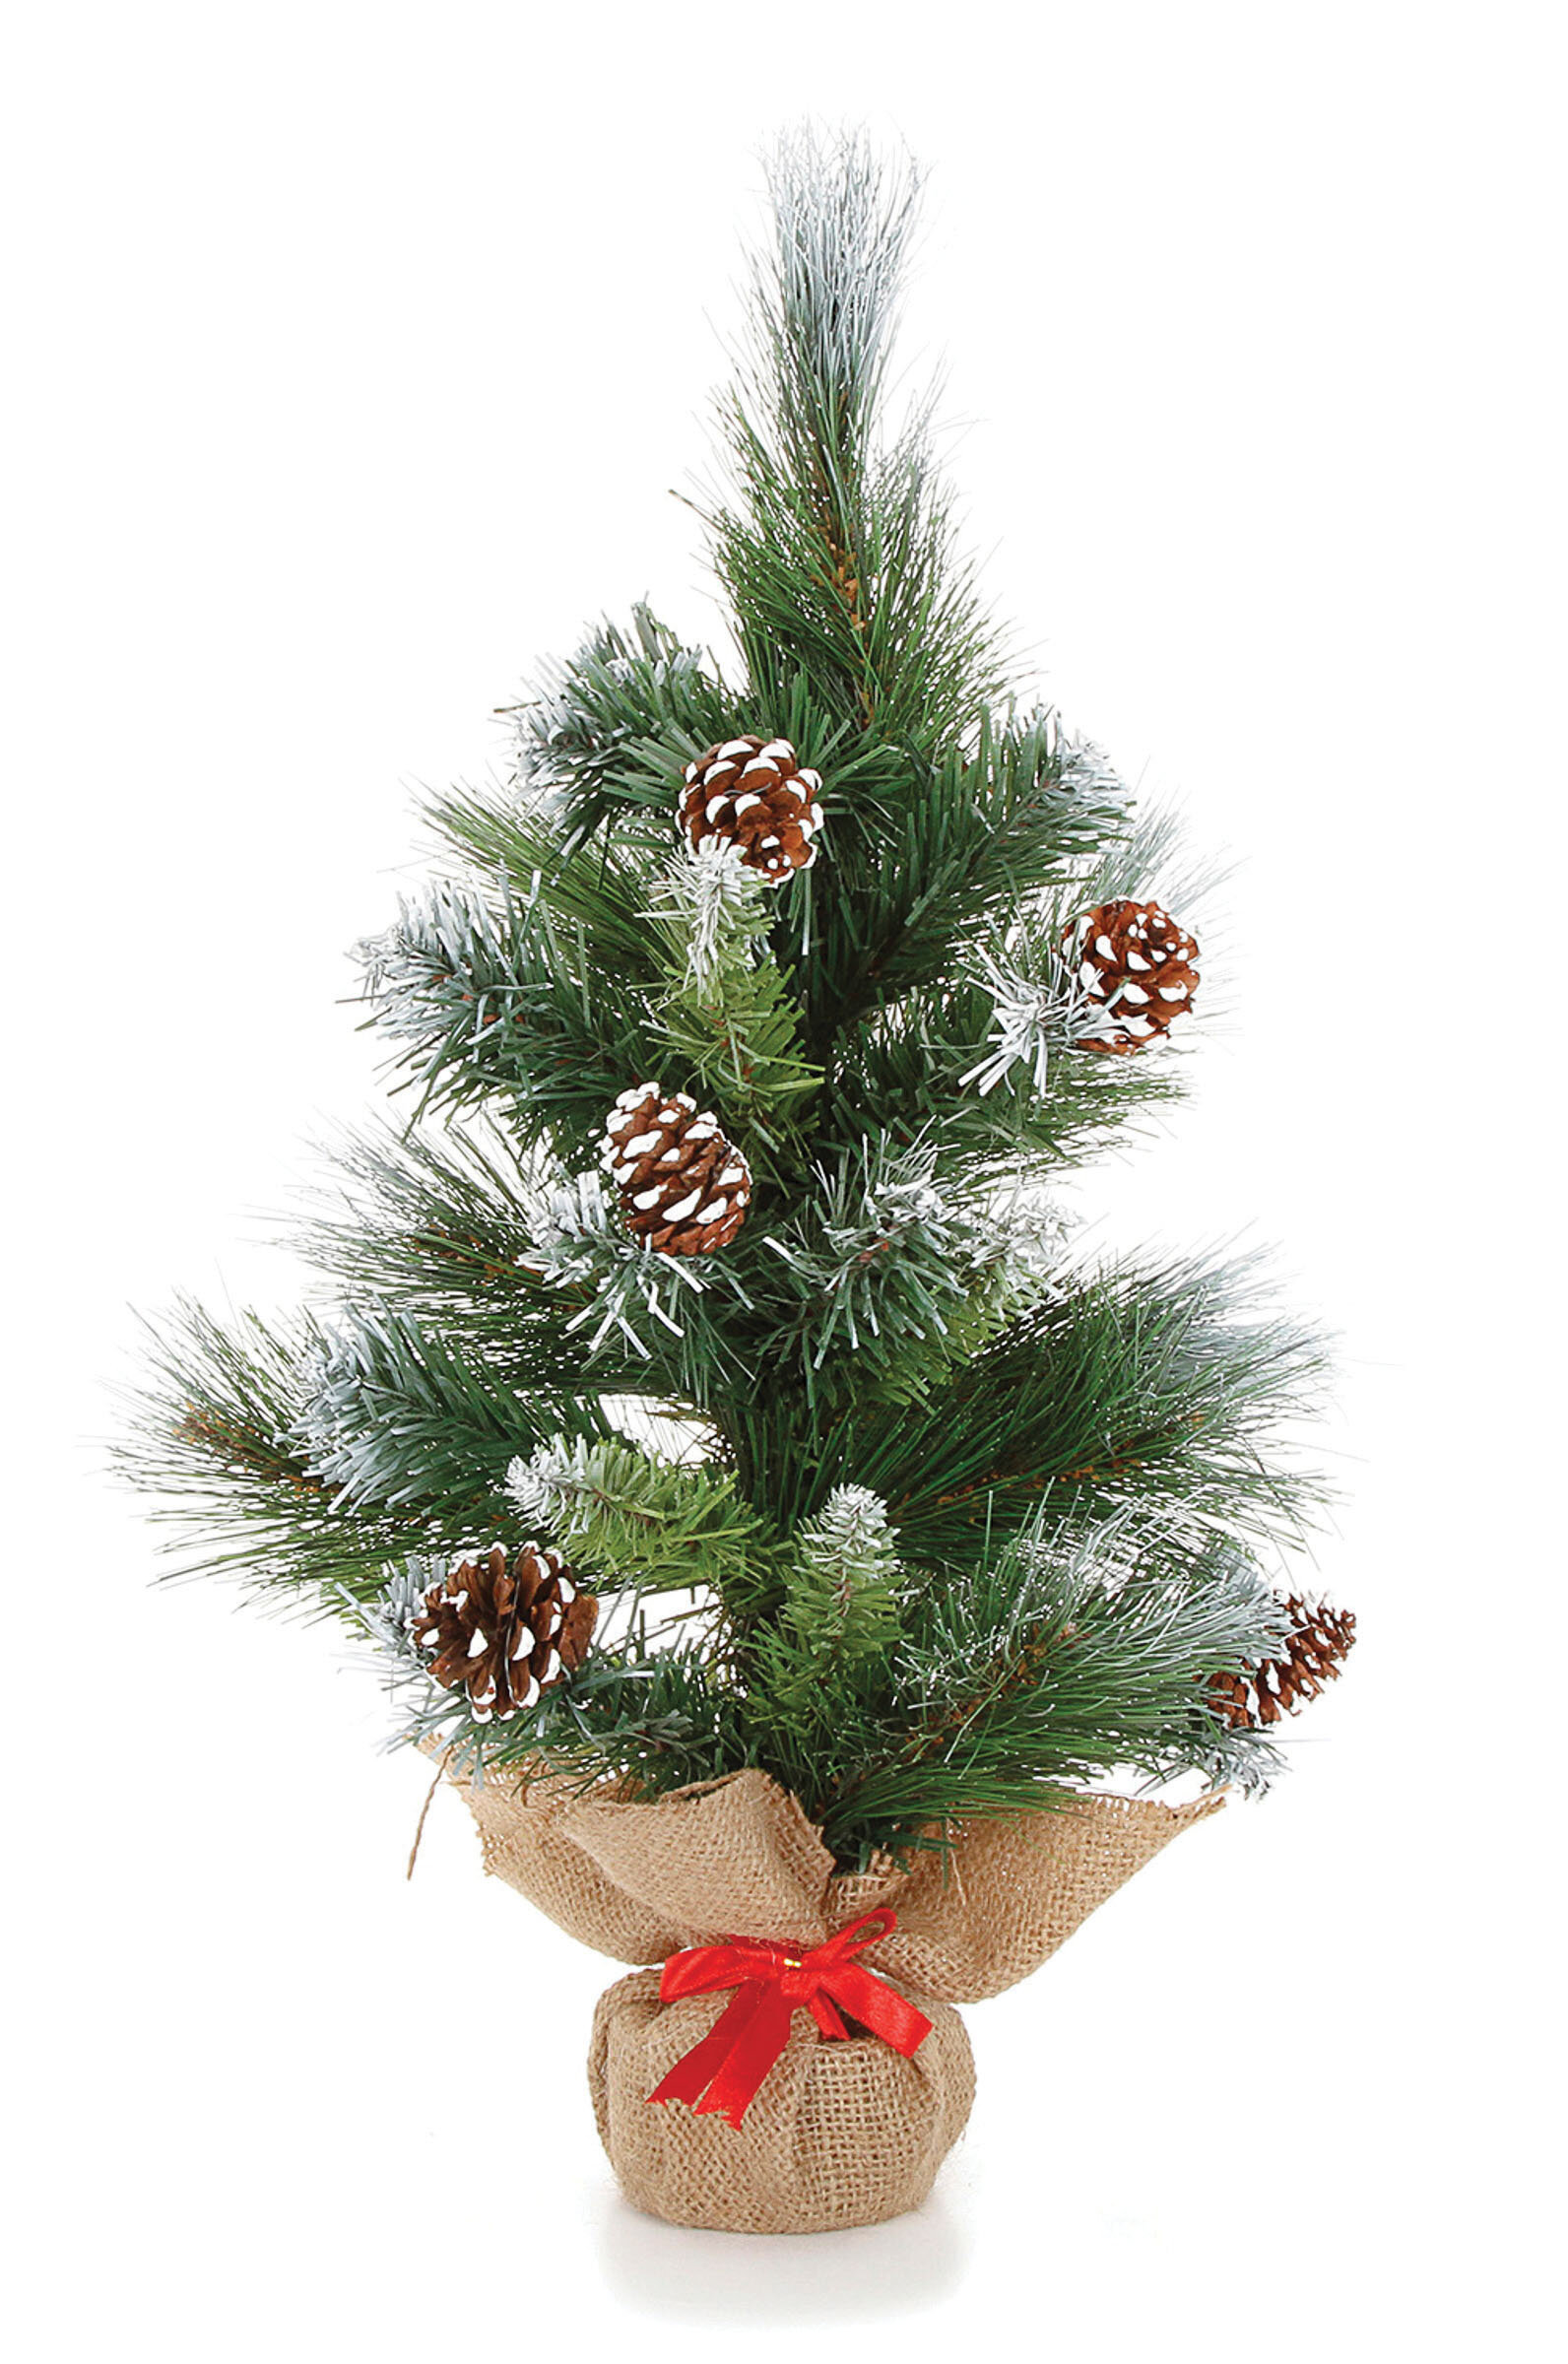 The Holiday Aisle Mini 18 Green Pine Trees Artificial Christmas Tree With Snow Pinecones Wayfair